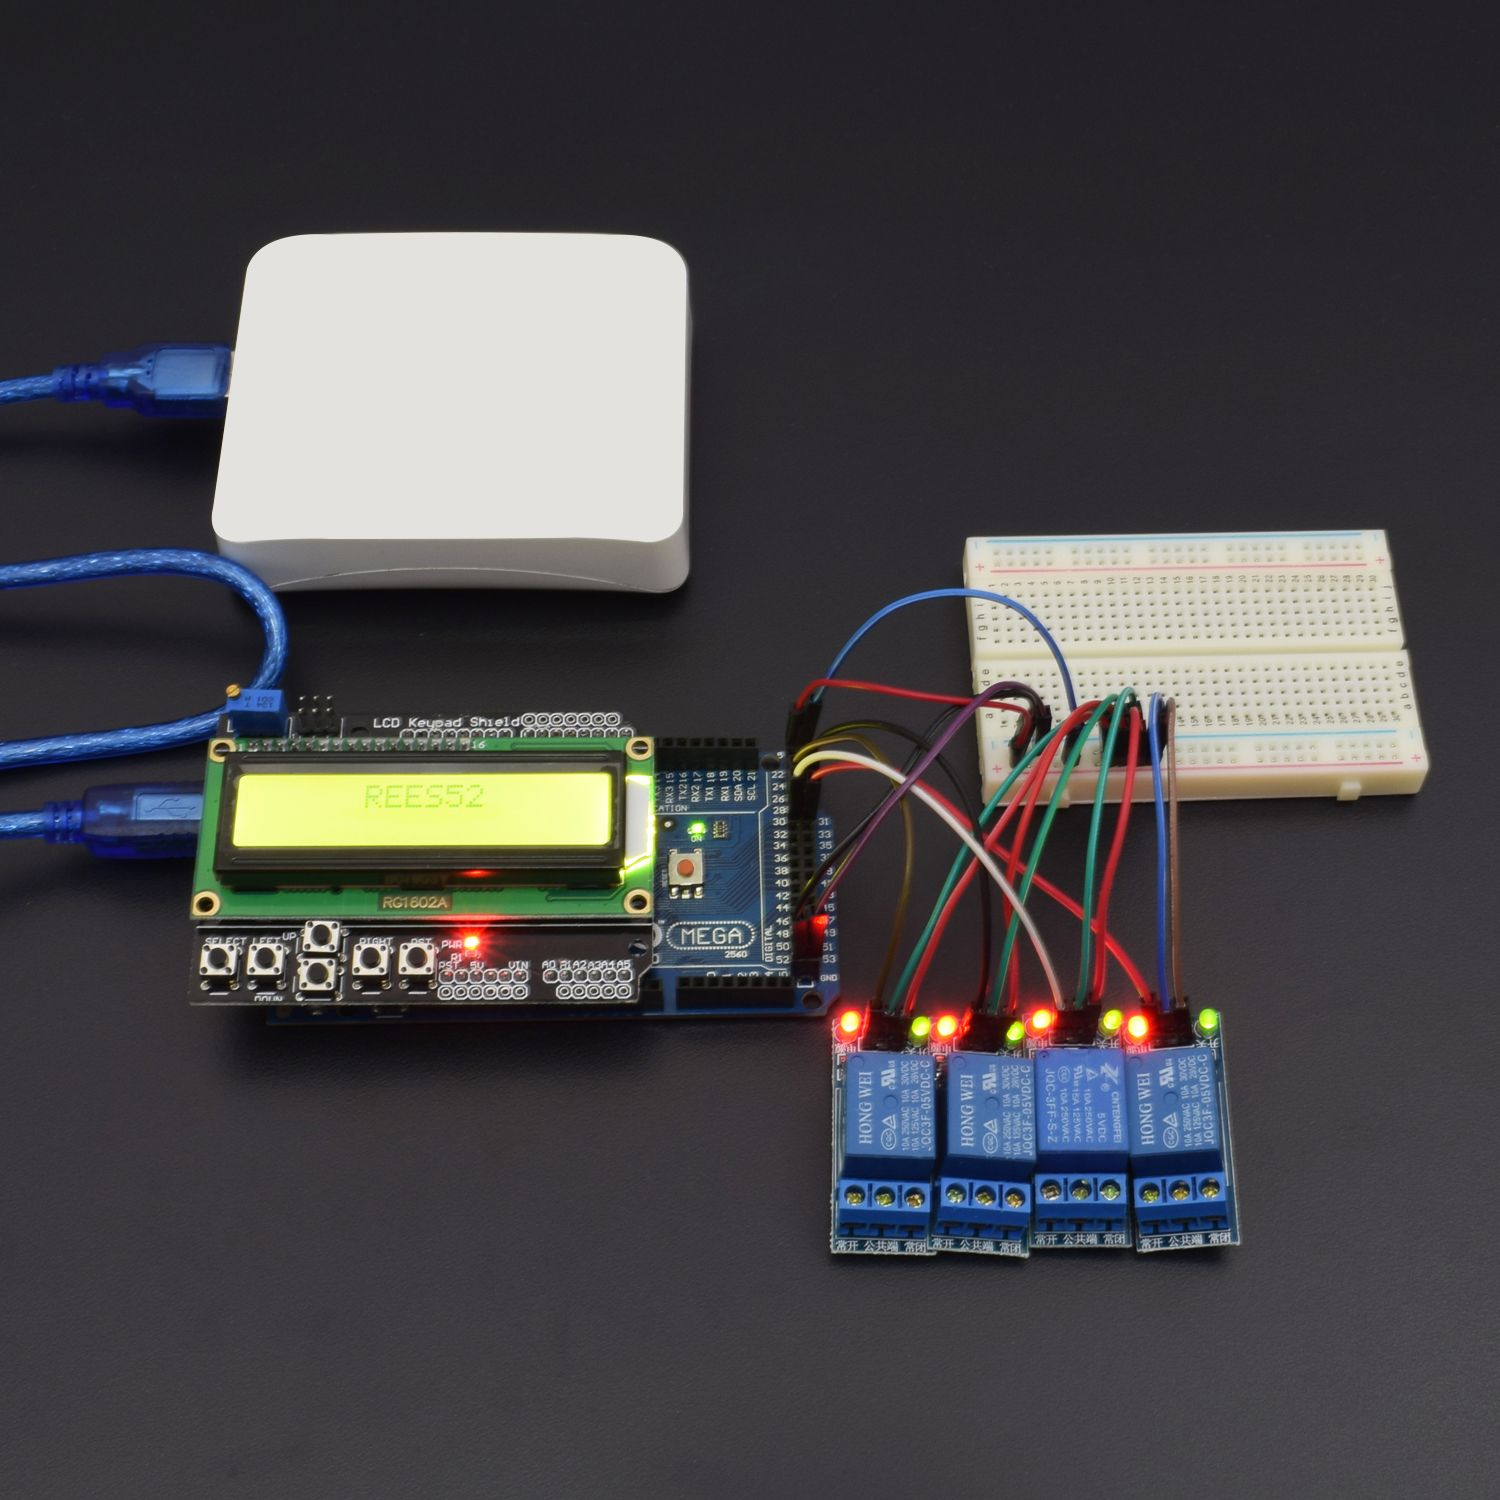 control 4 one channel 5v relay module with the help of lcd keypad shield  interfacing with arduino mega -kt786